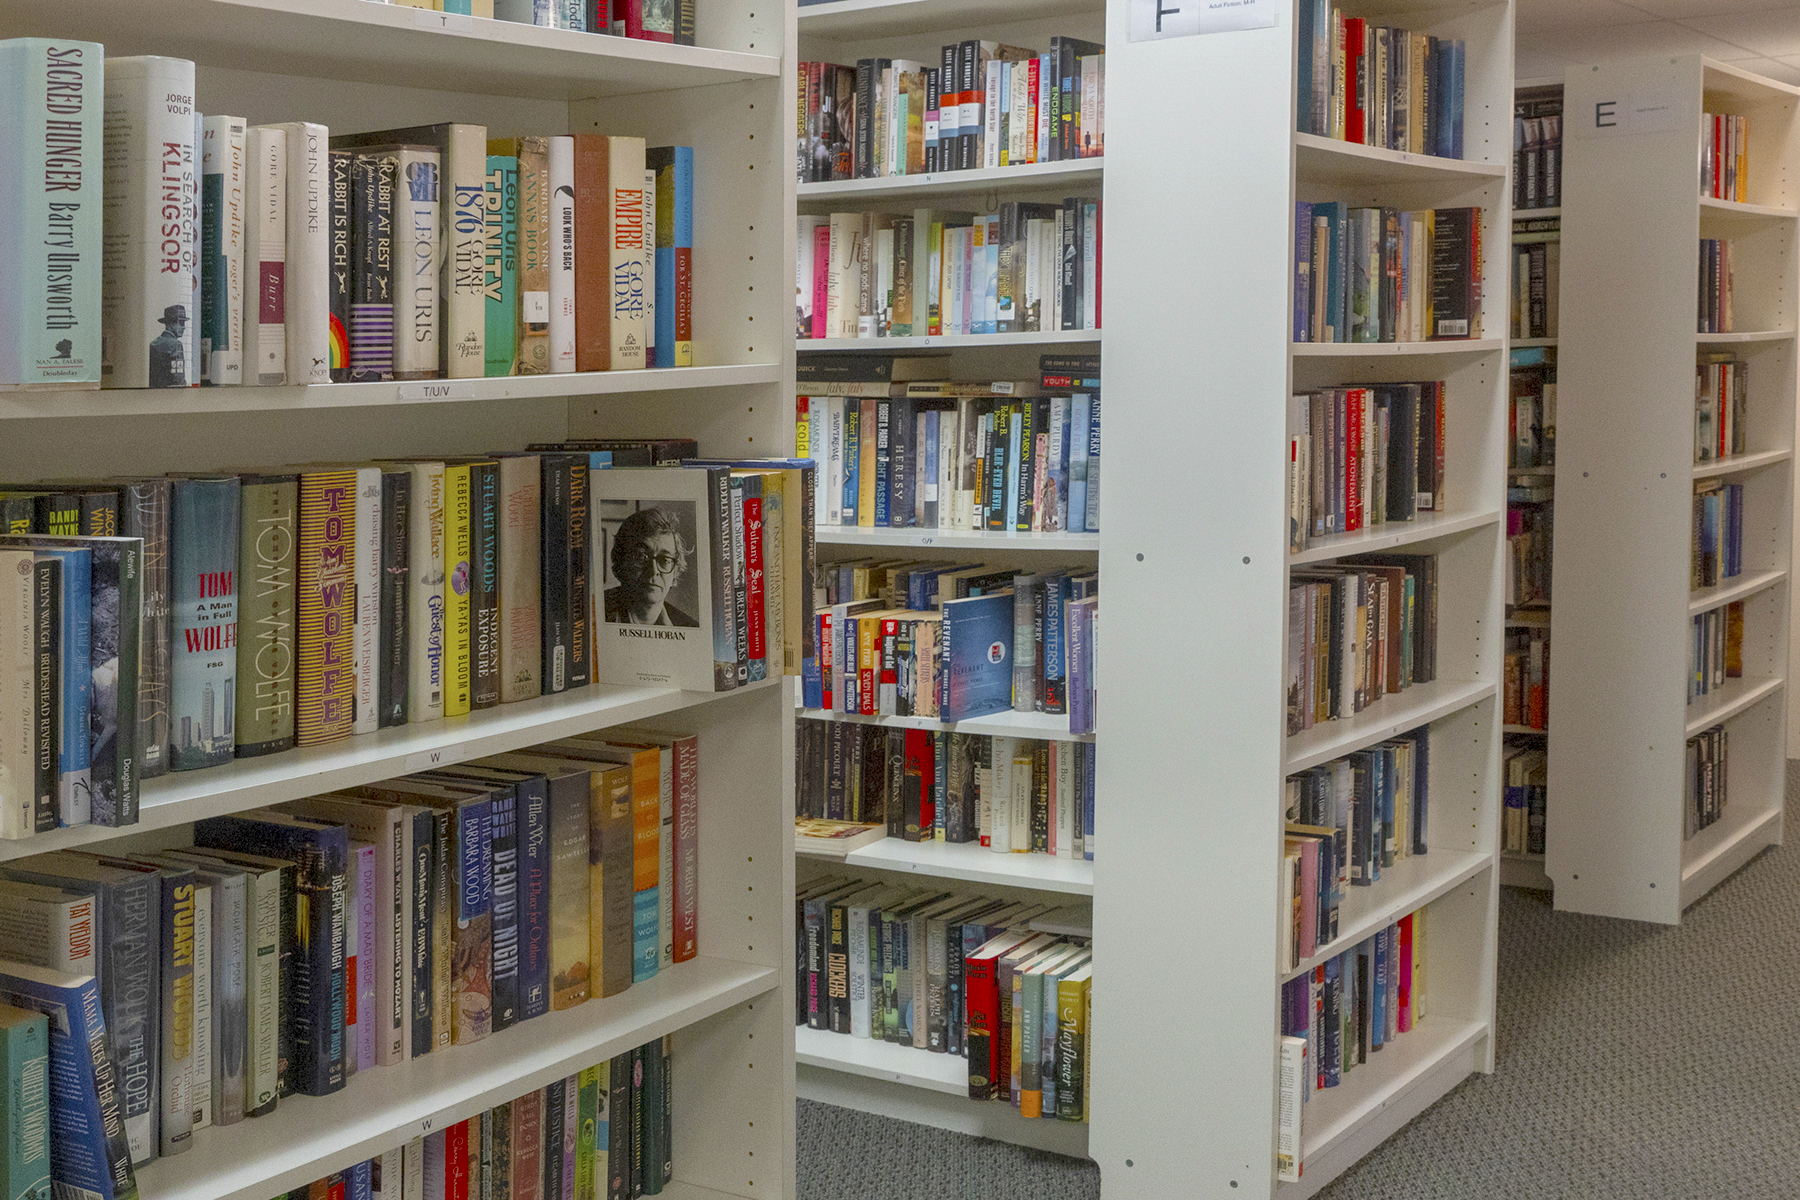 Rows of shelves fill the NHR Book Bank.